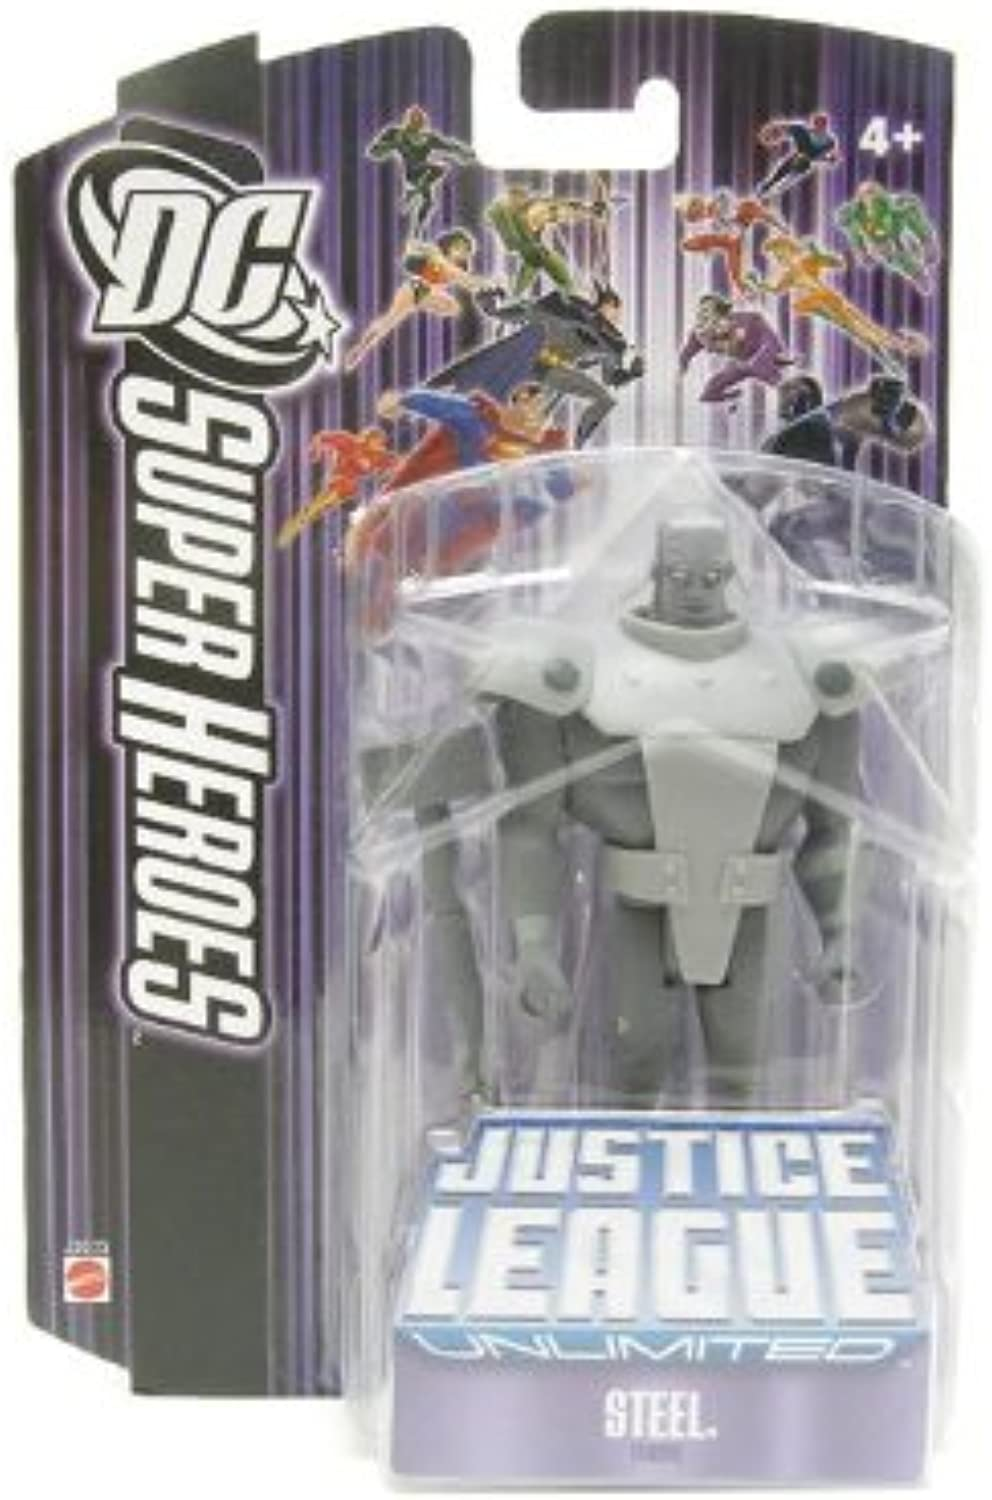 Mattel DC Super Heroes Justice League Unlimited Action Figure Steel